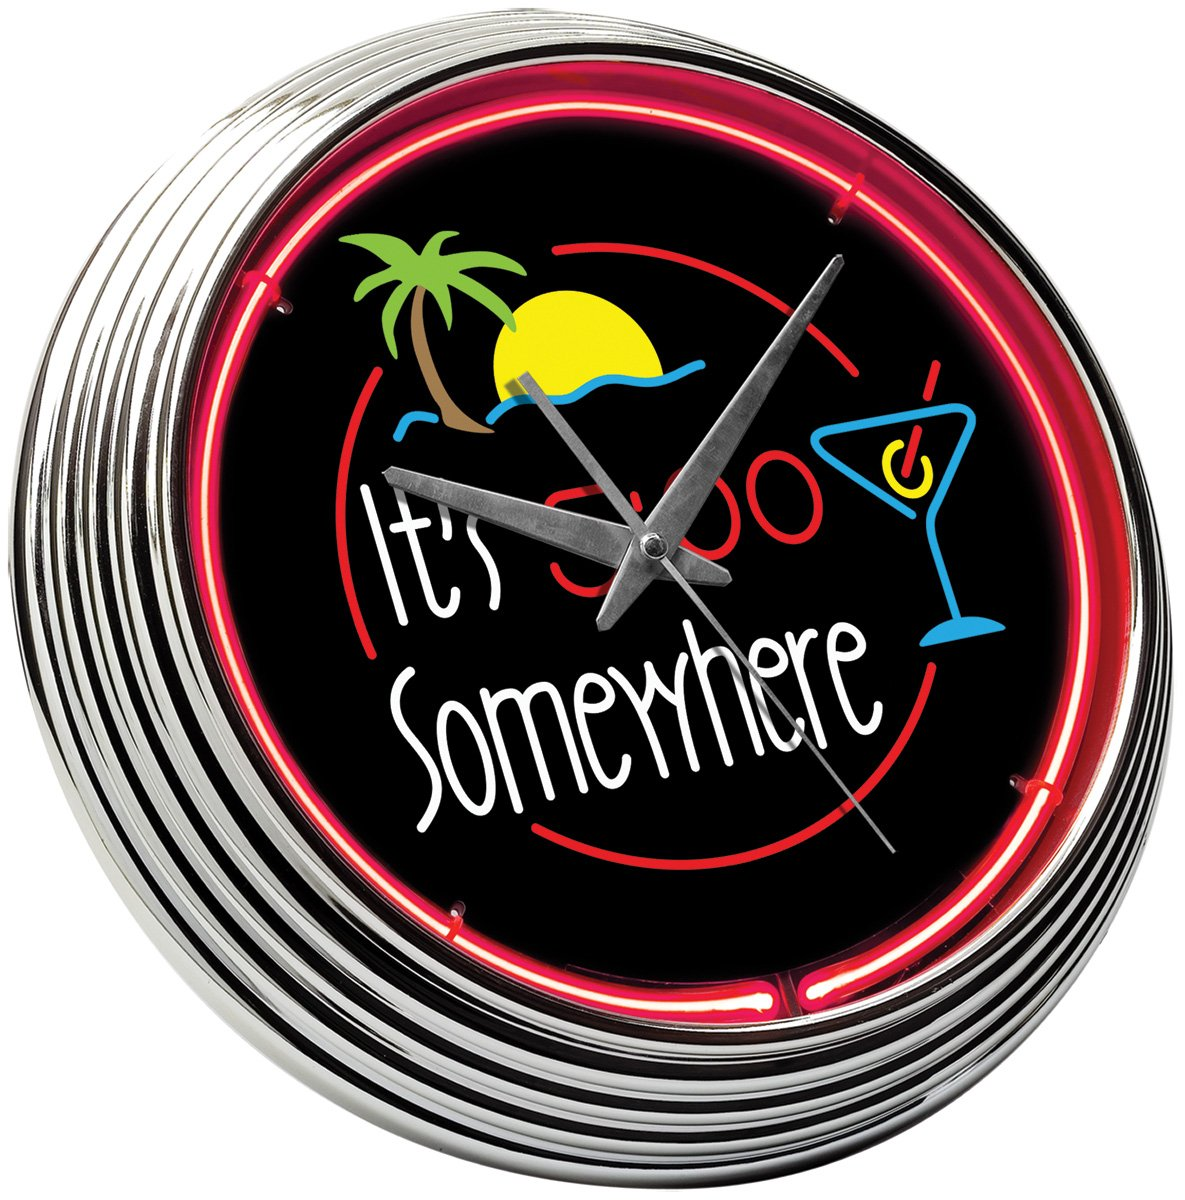 Amazon creative outdoor distributor 259102 it is 5 oclock amazon creative outdoor distributor 259102 it is 5 oclock somewhere neon clock home kitchen amipublicfo Images